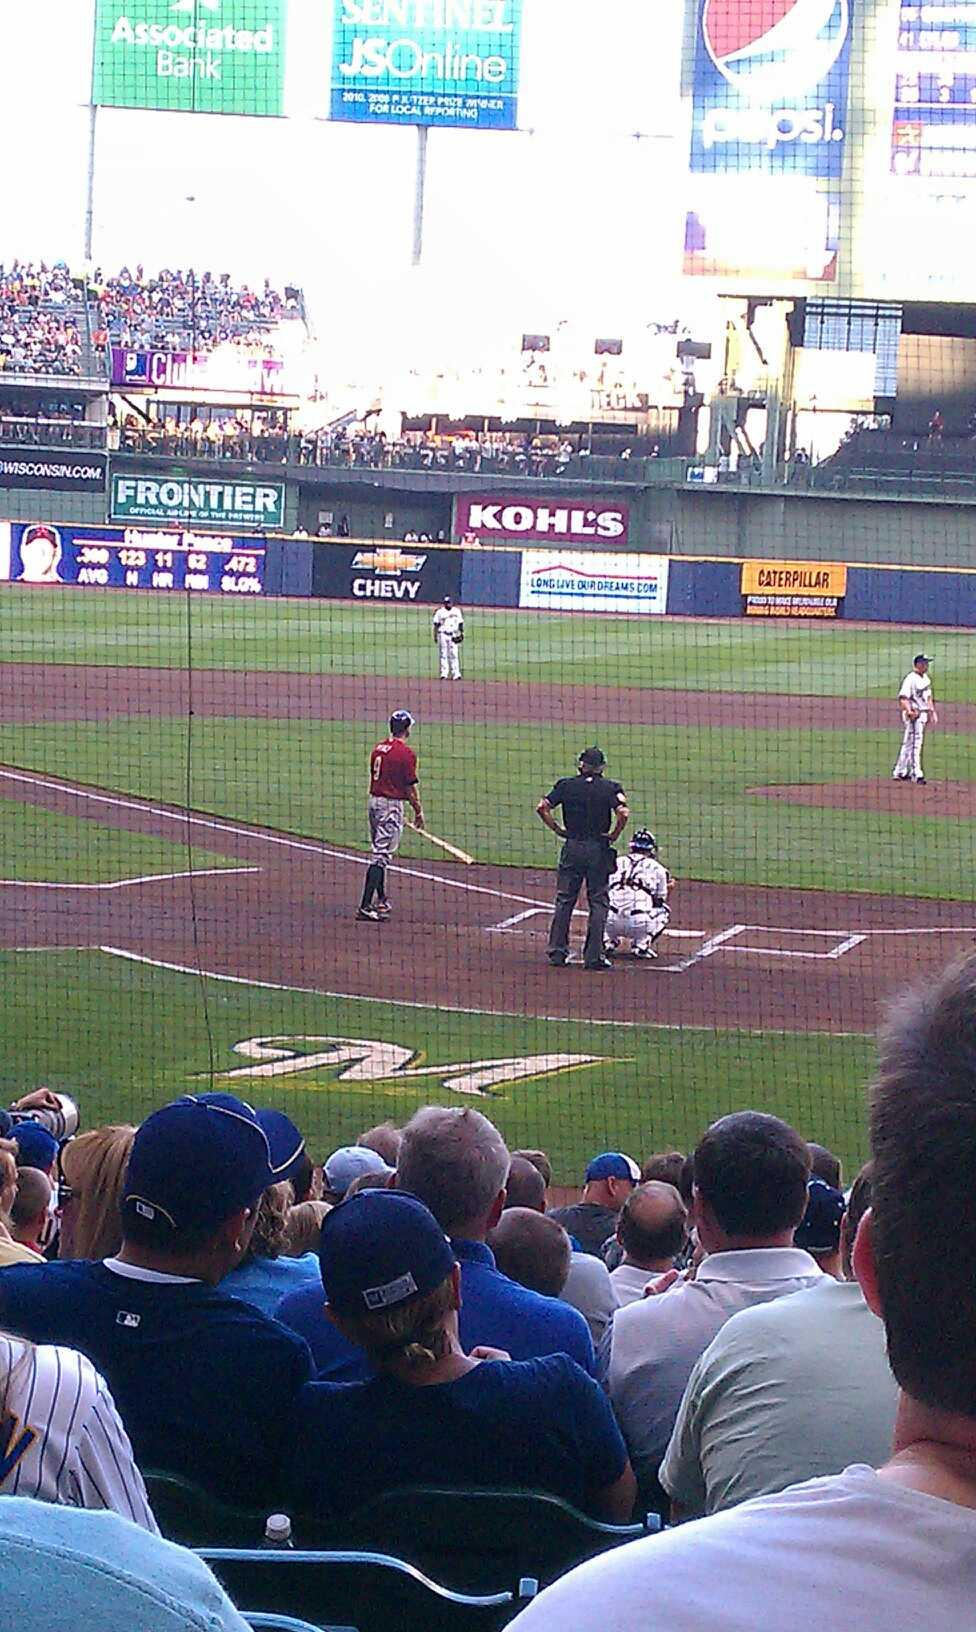 Miller Park Section 117 Row 8 Seat 8